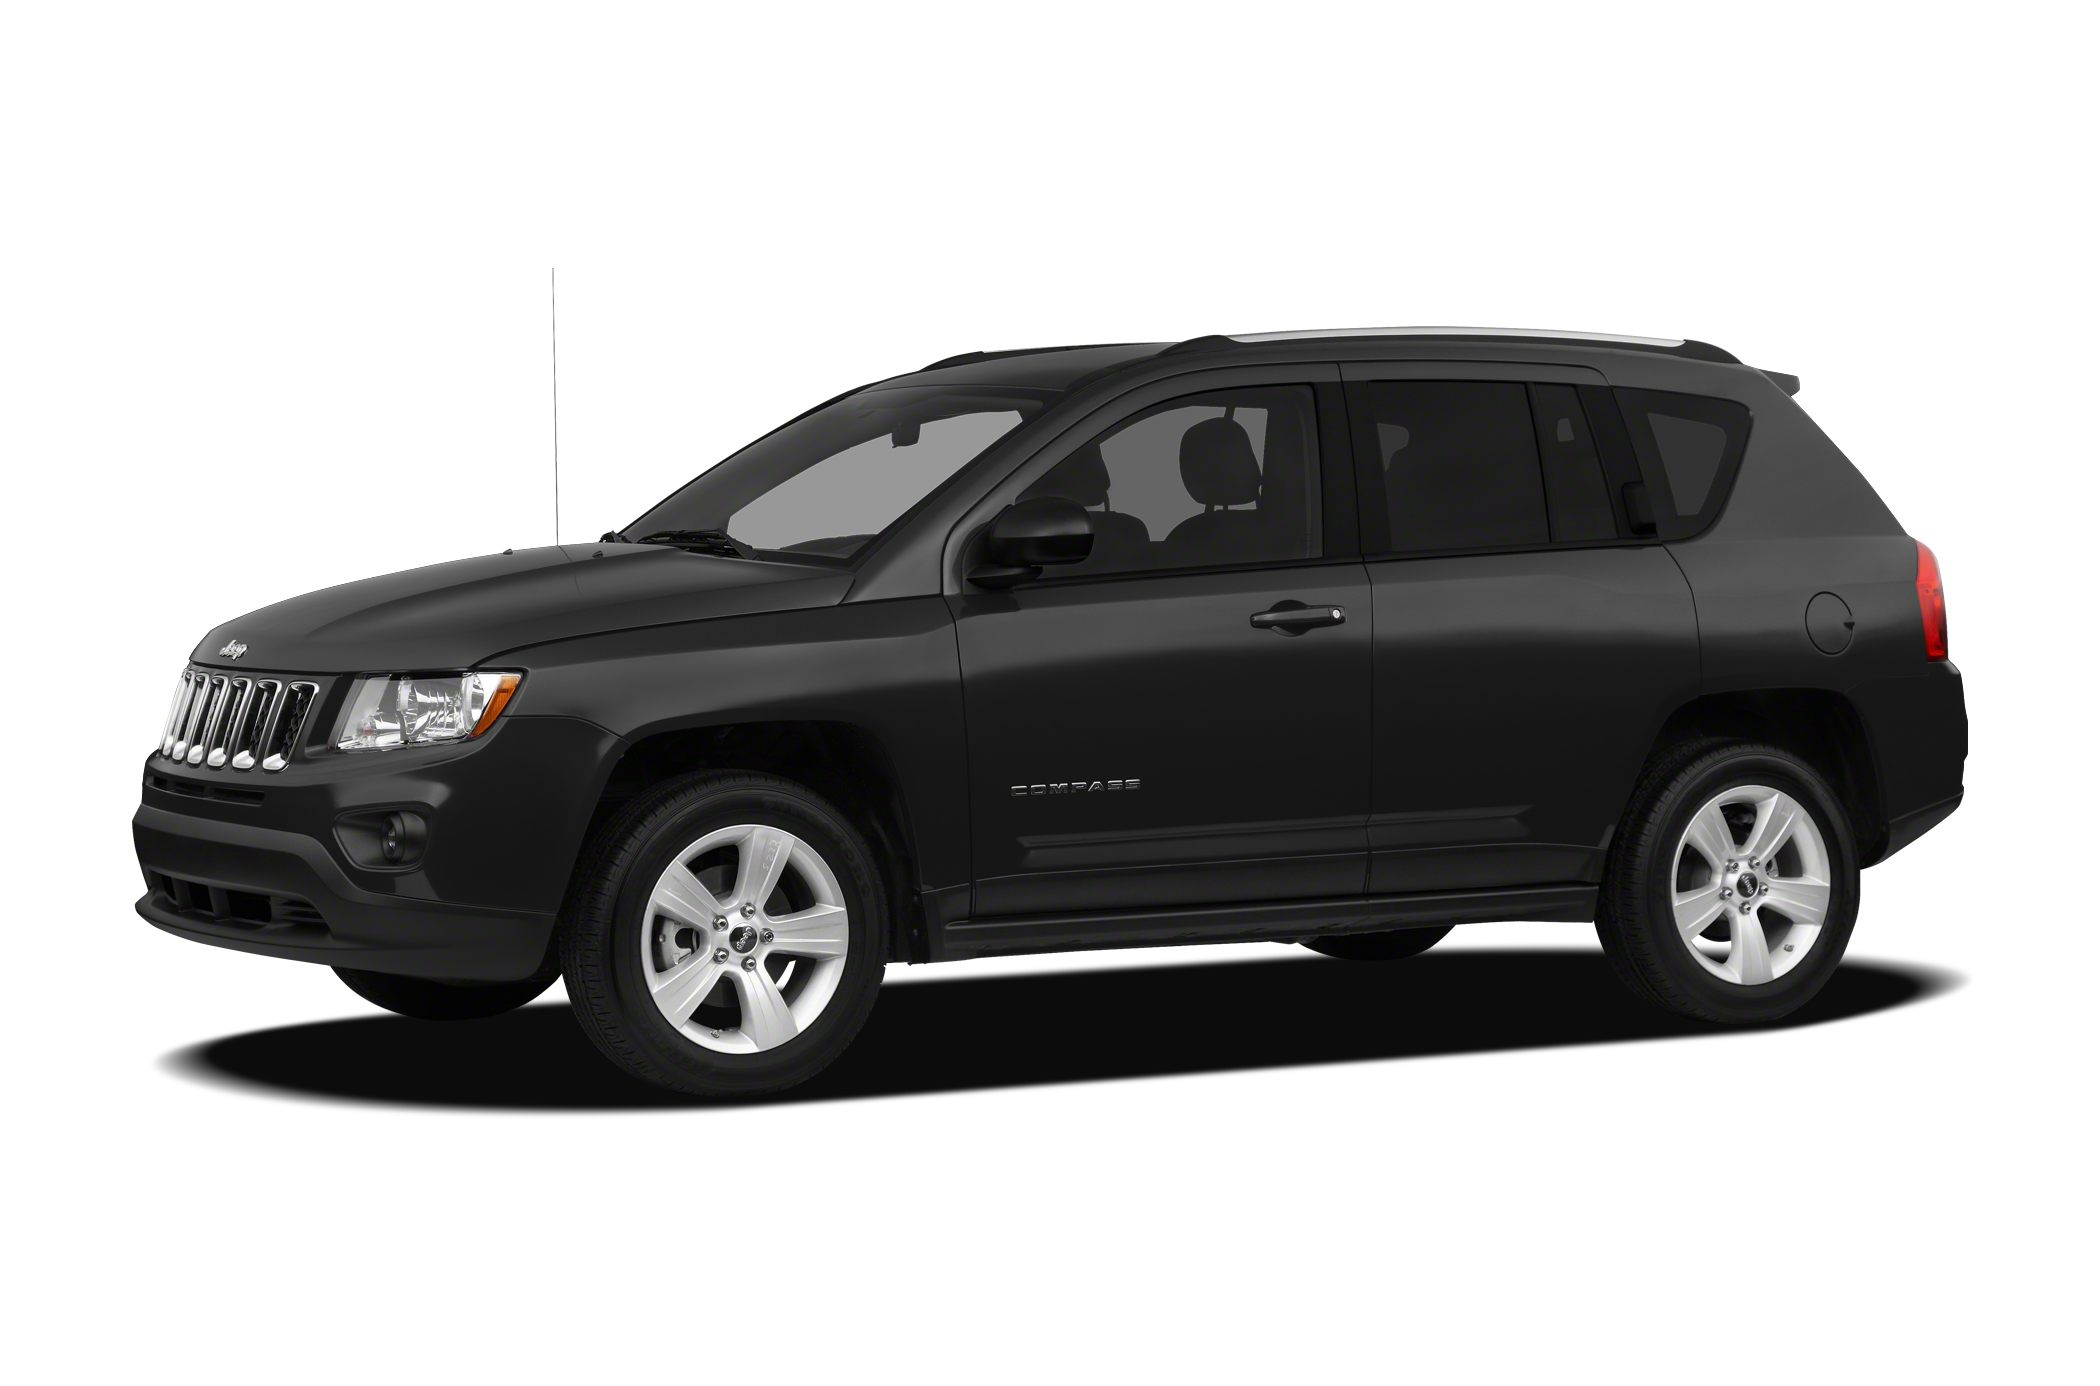 2012 Jeep Compass Sport SUV for sale in Lebanon for $15,895 with 30,991 miles.